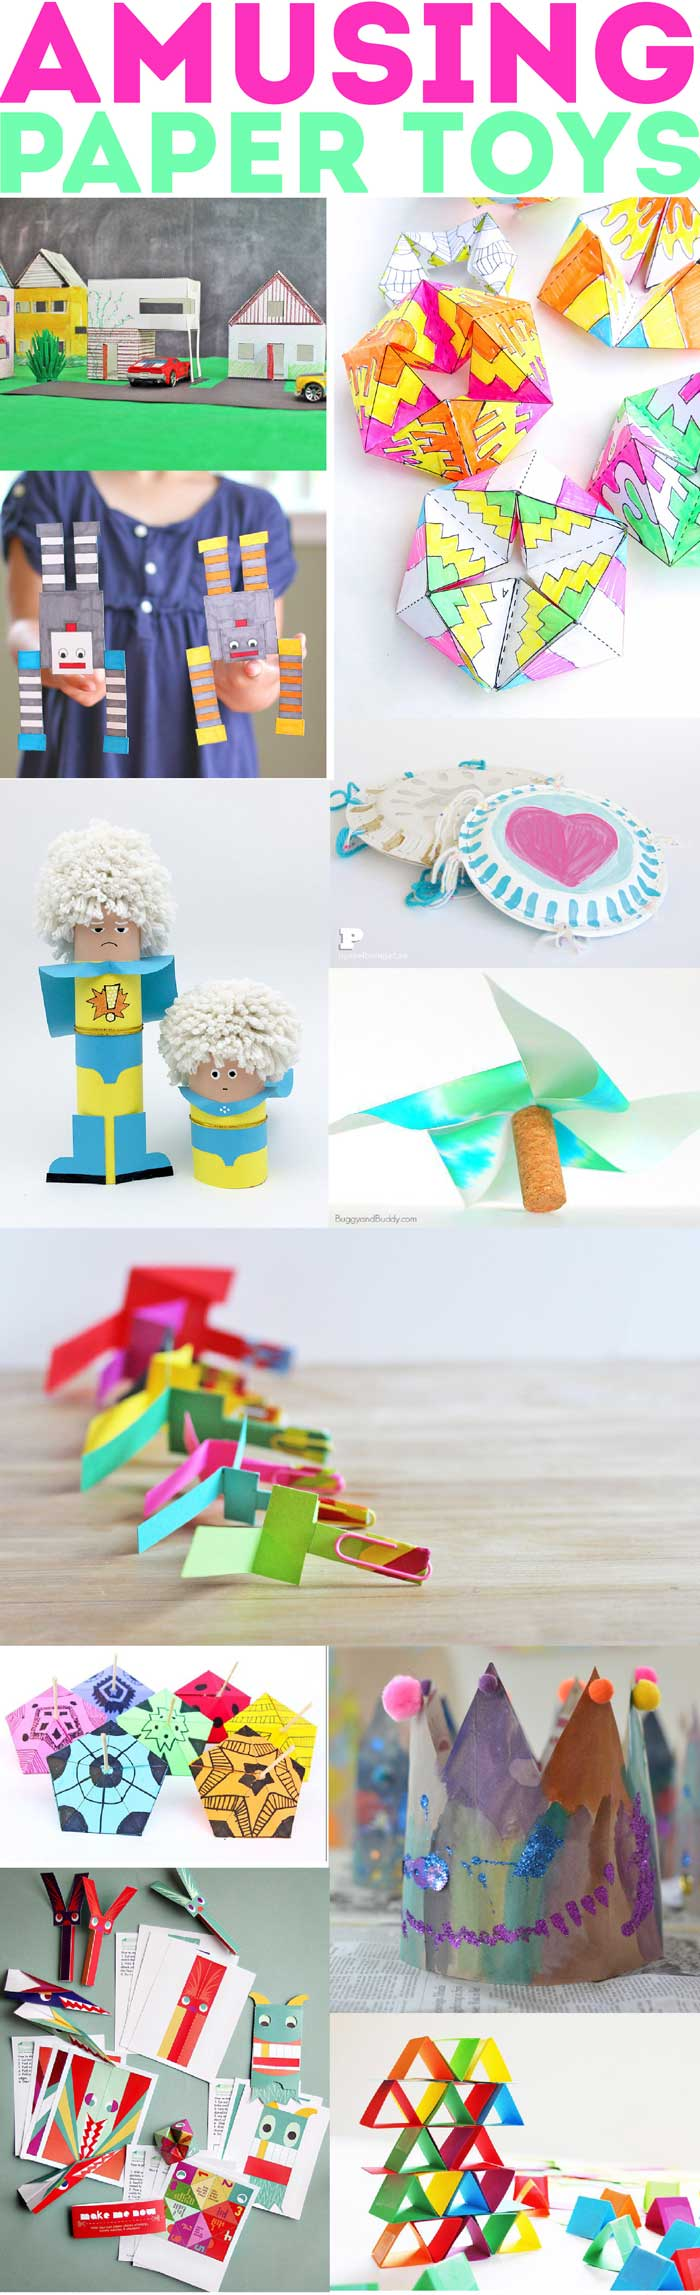 60+ Paper Crafts for kids and adults from the Rockin' Art Moms. Paper Toys to make at home